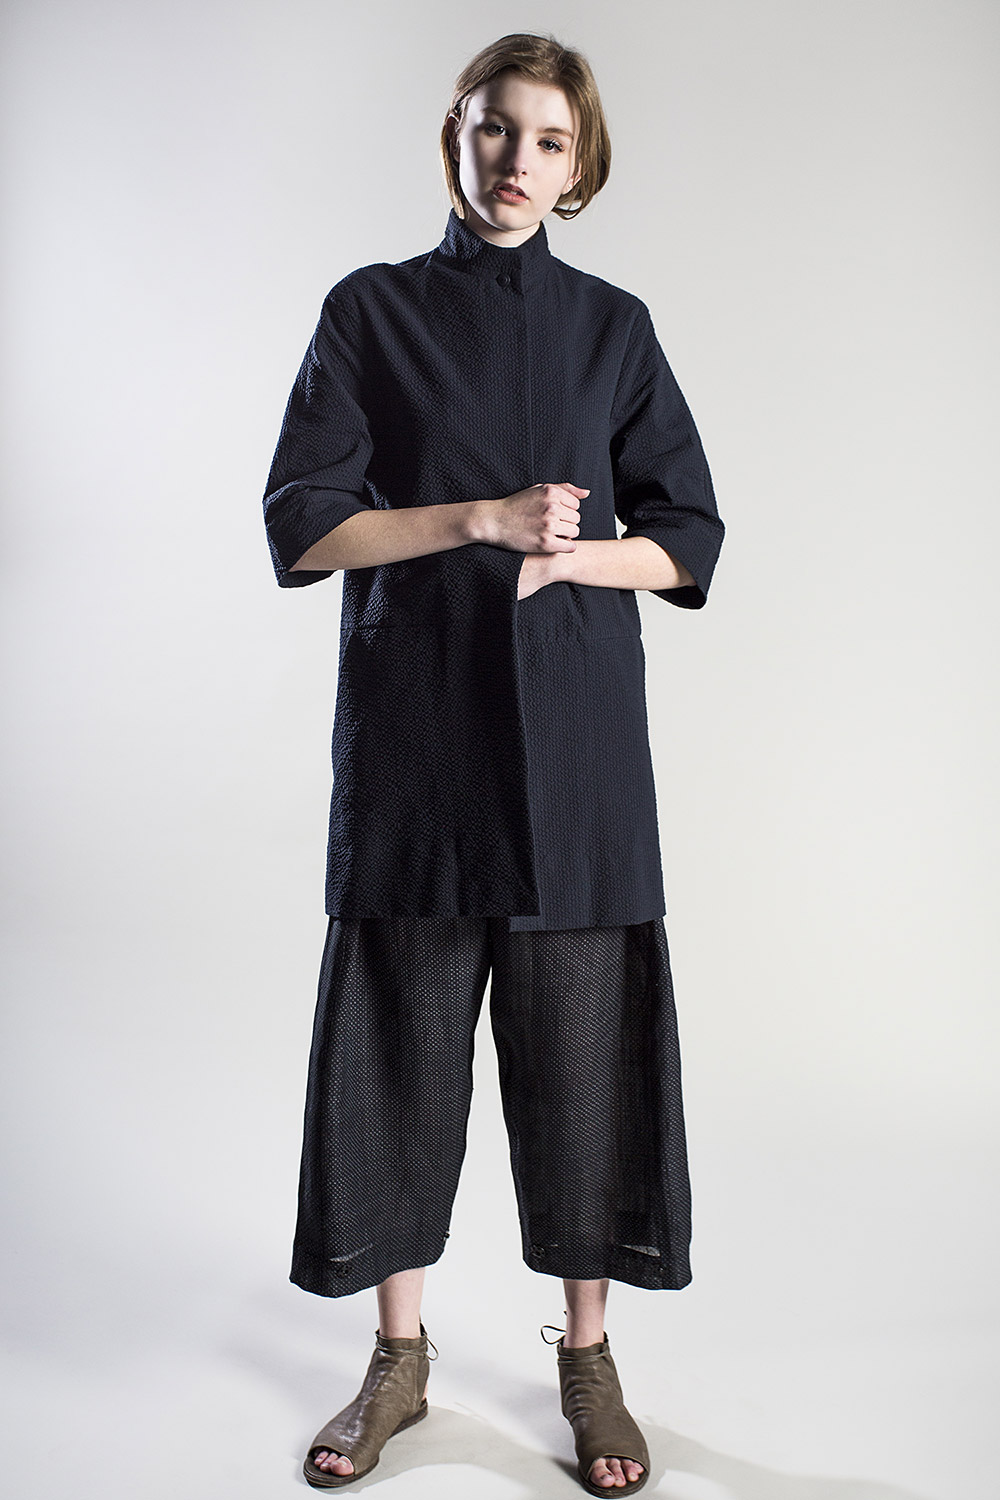 Outfit-17-4554.jpg